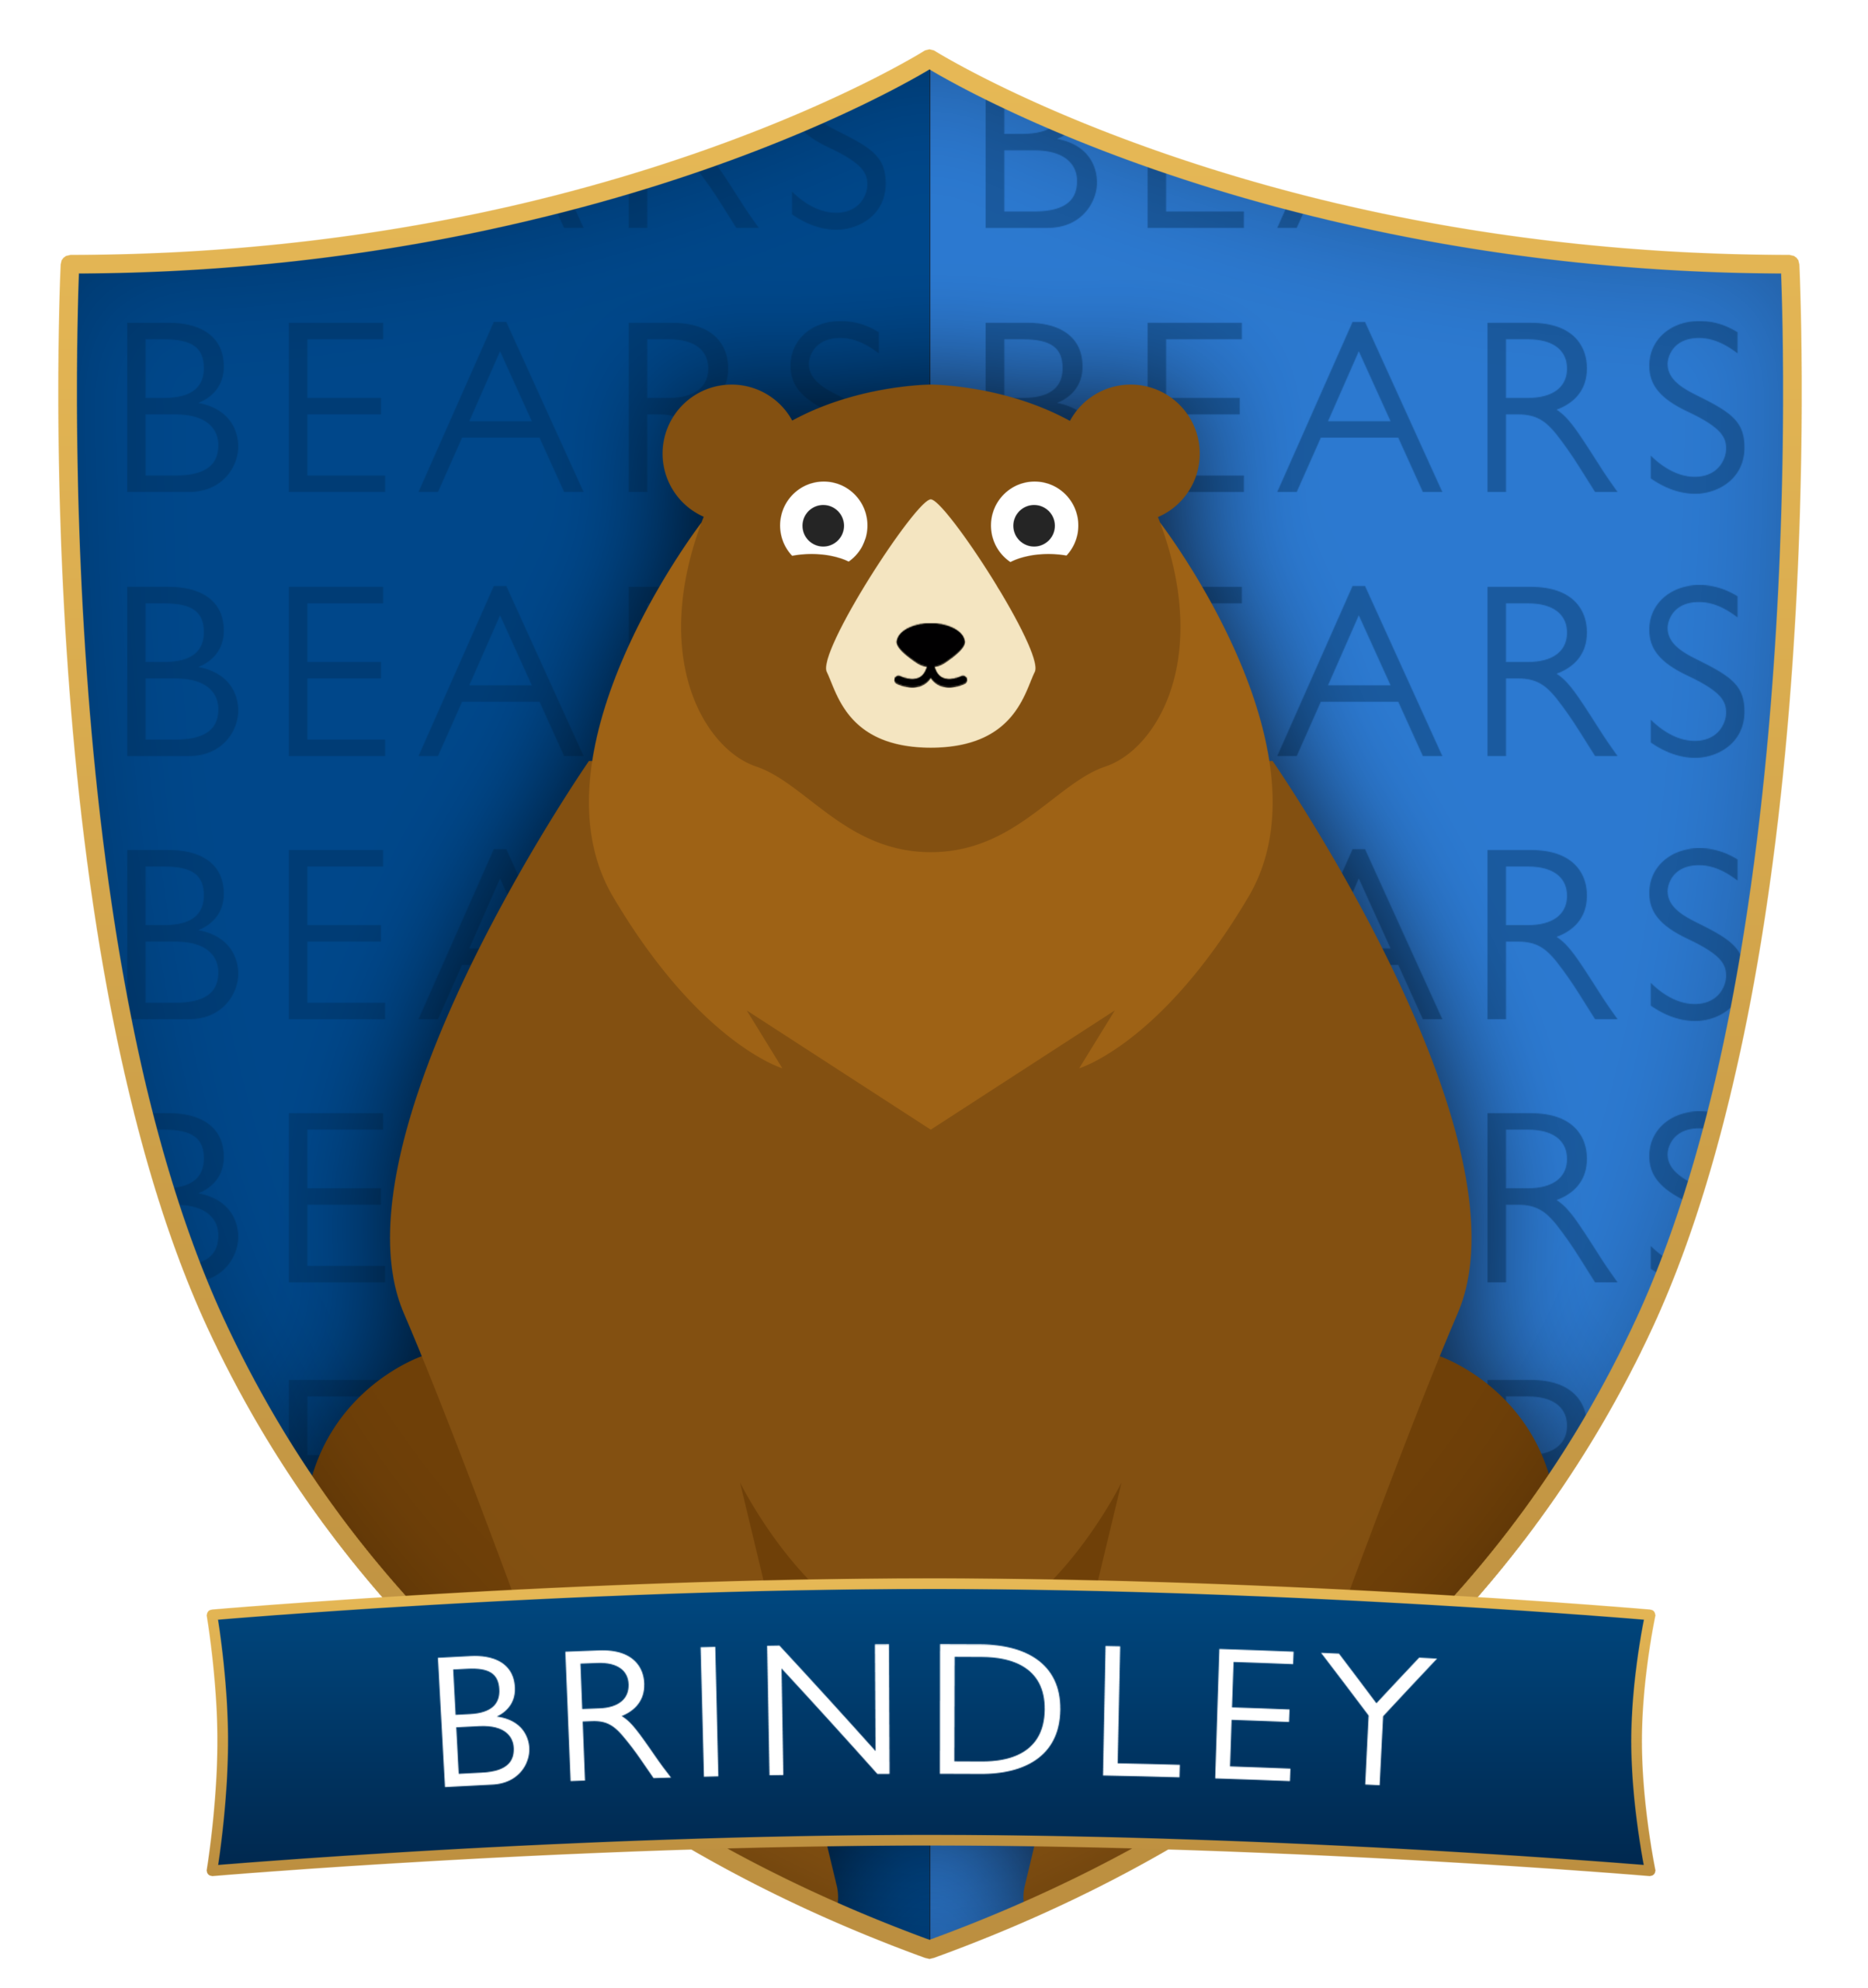 Brindley-Bears